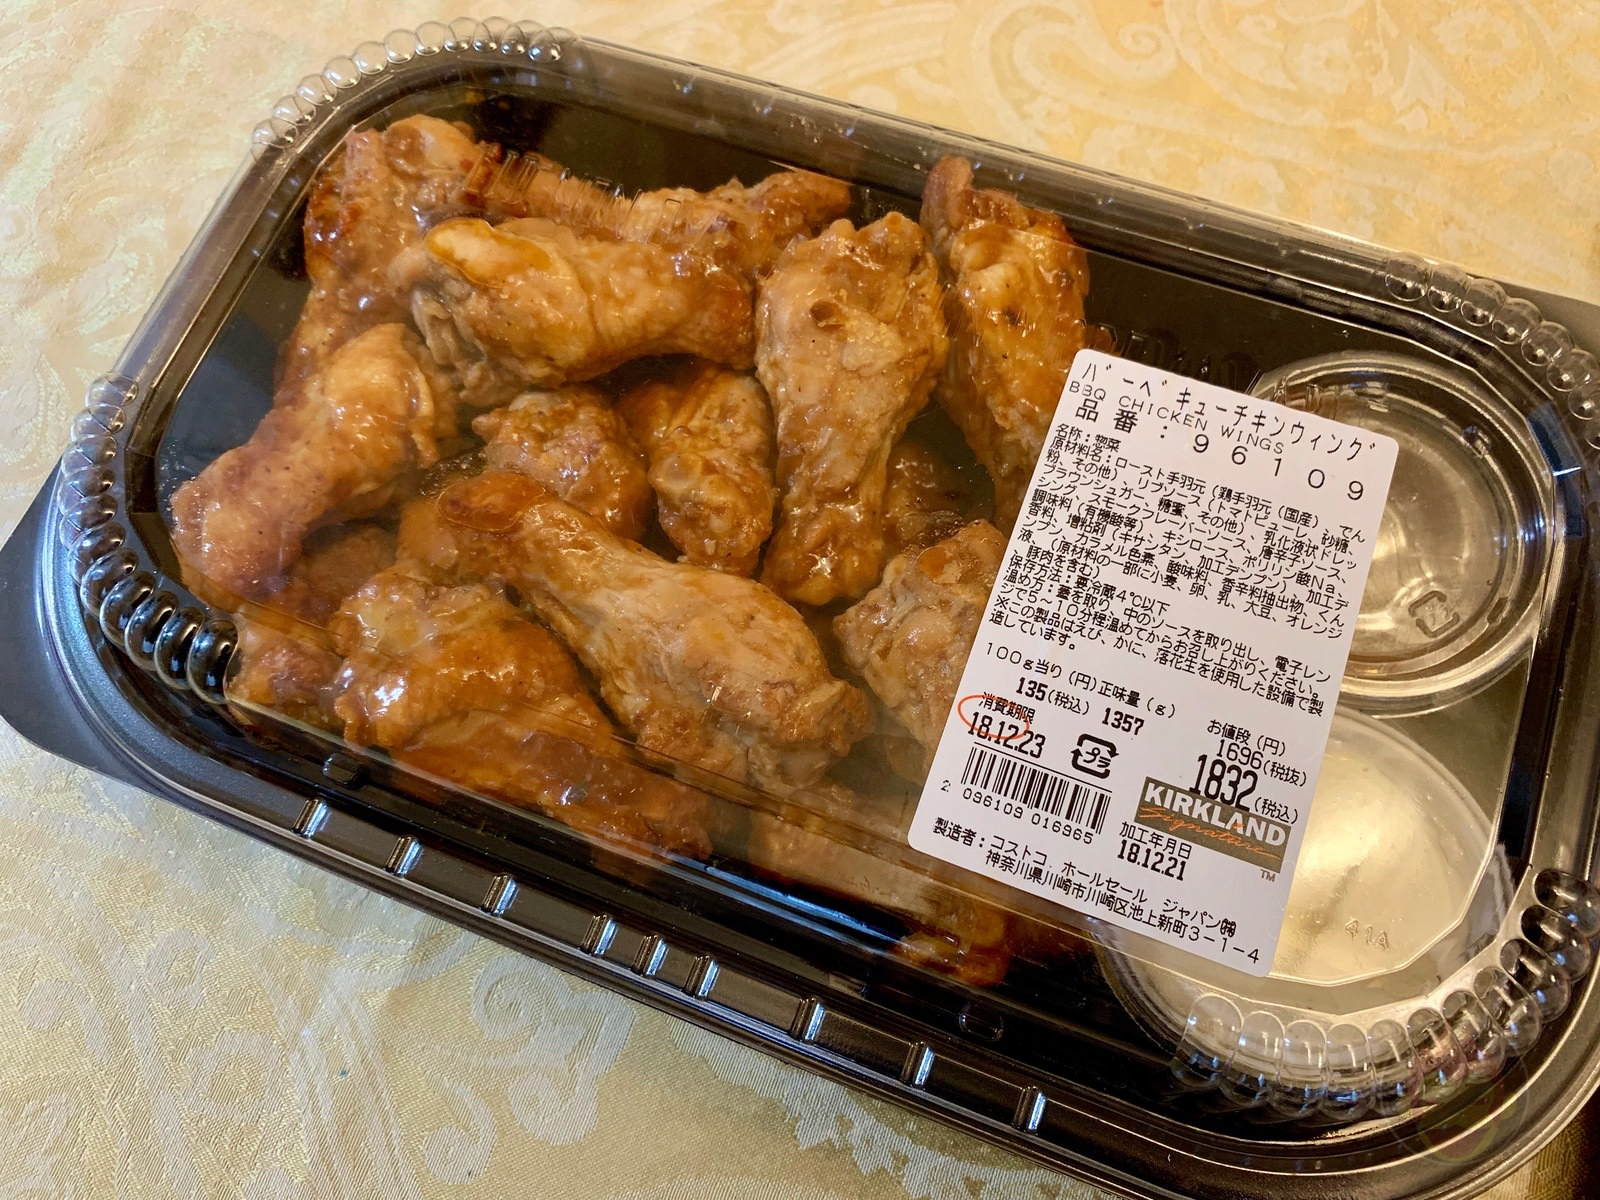 Costco-ChickenWings-Sushi-RoastBeef-and-so-on-18.jpg